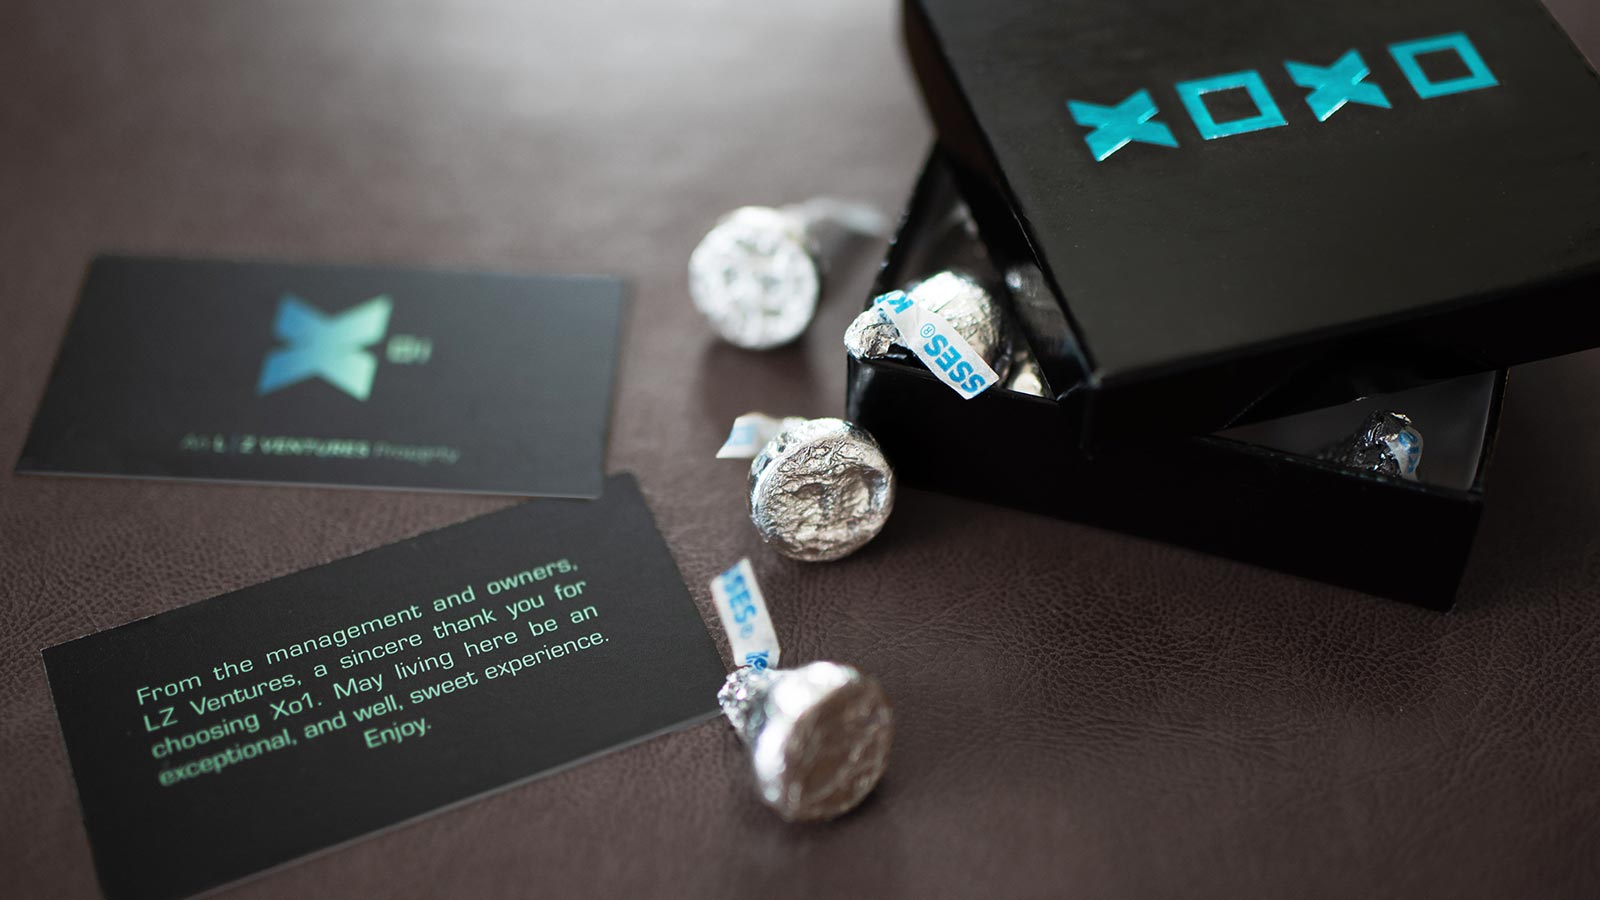 X01 branded welcome package containing a thank you card and candy